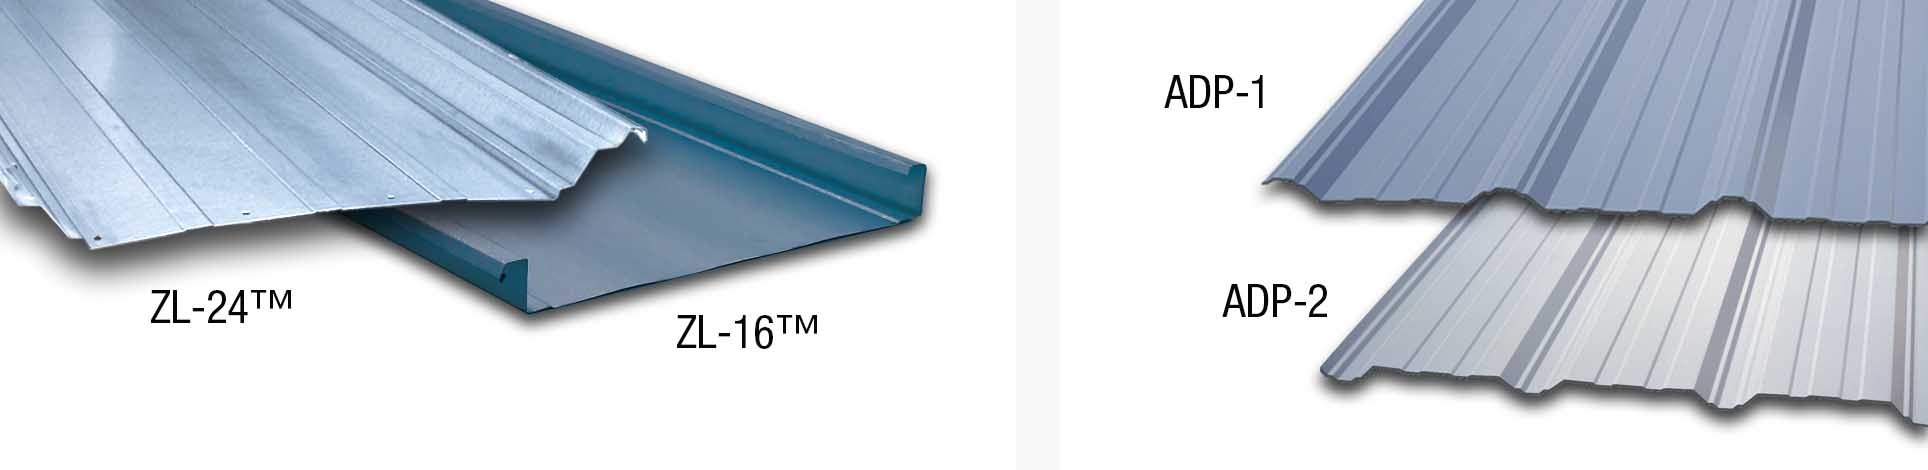 ZL-24 and ZL-16 Standing Seam Roof Panels